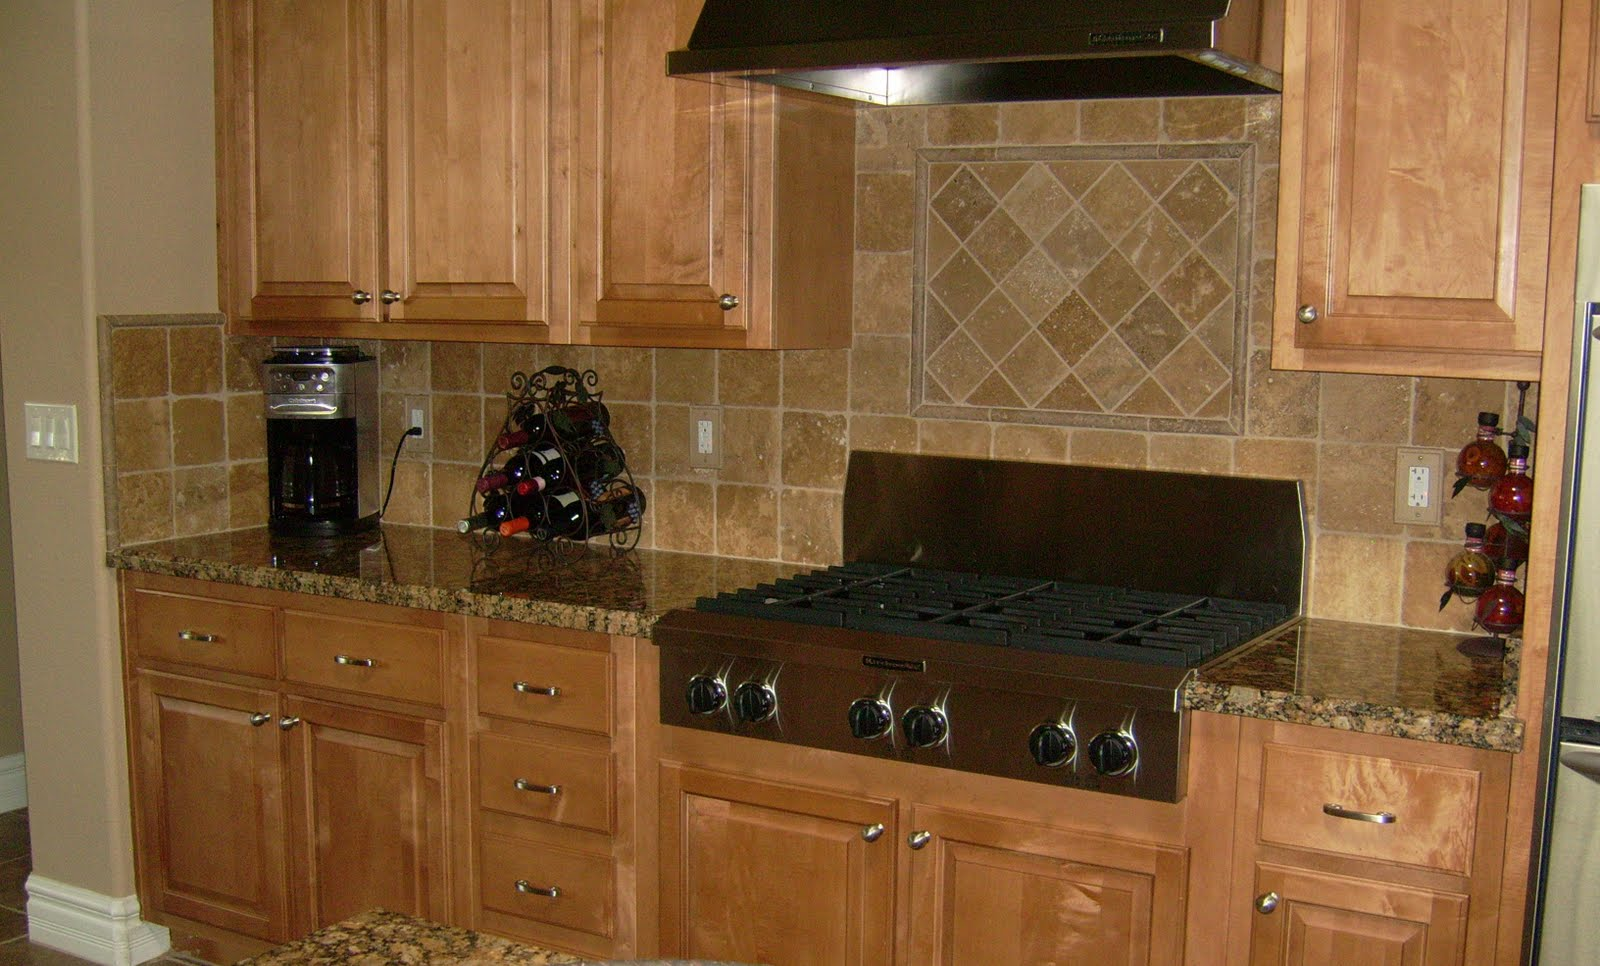 kitchen cabinet ideas small kitchens on Pictures Kitchen Backsplash Ideas 6x6 Tumbled Stone Kitchen Backsplash ...